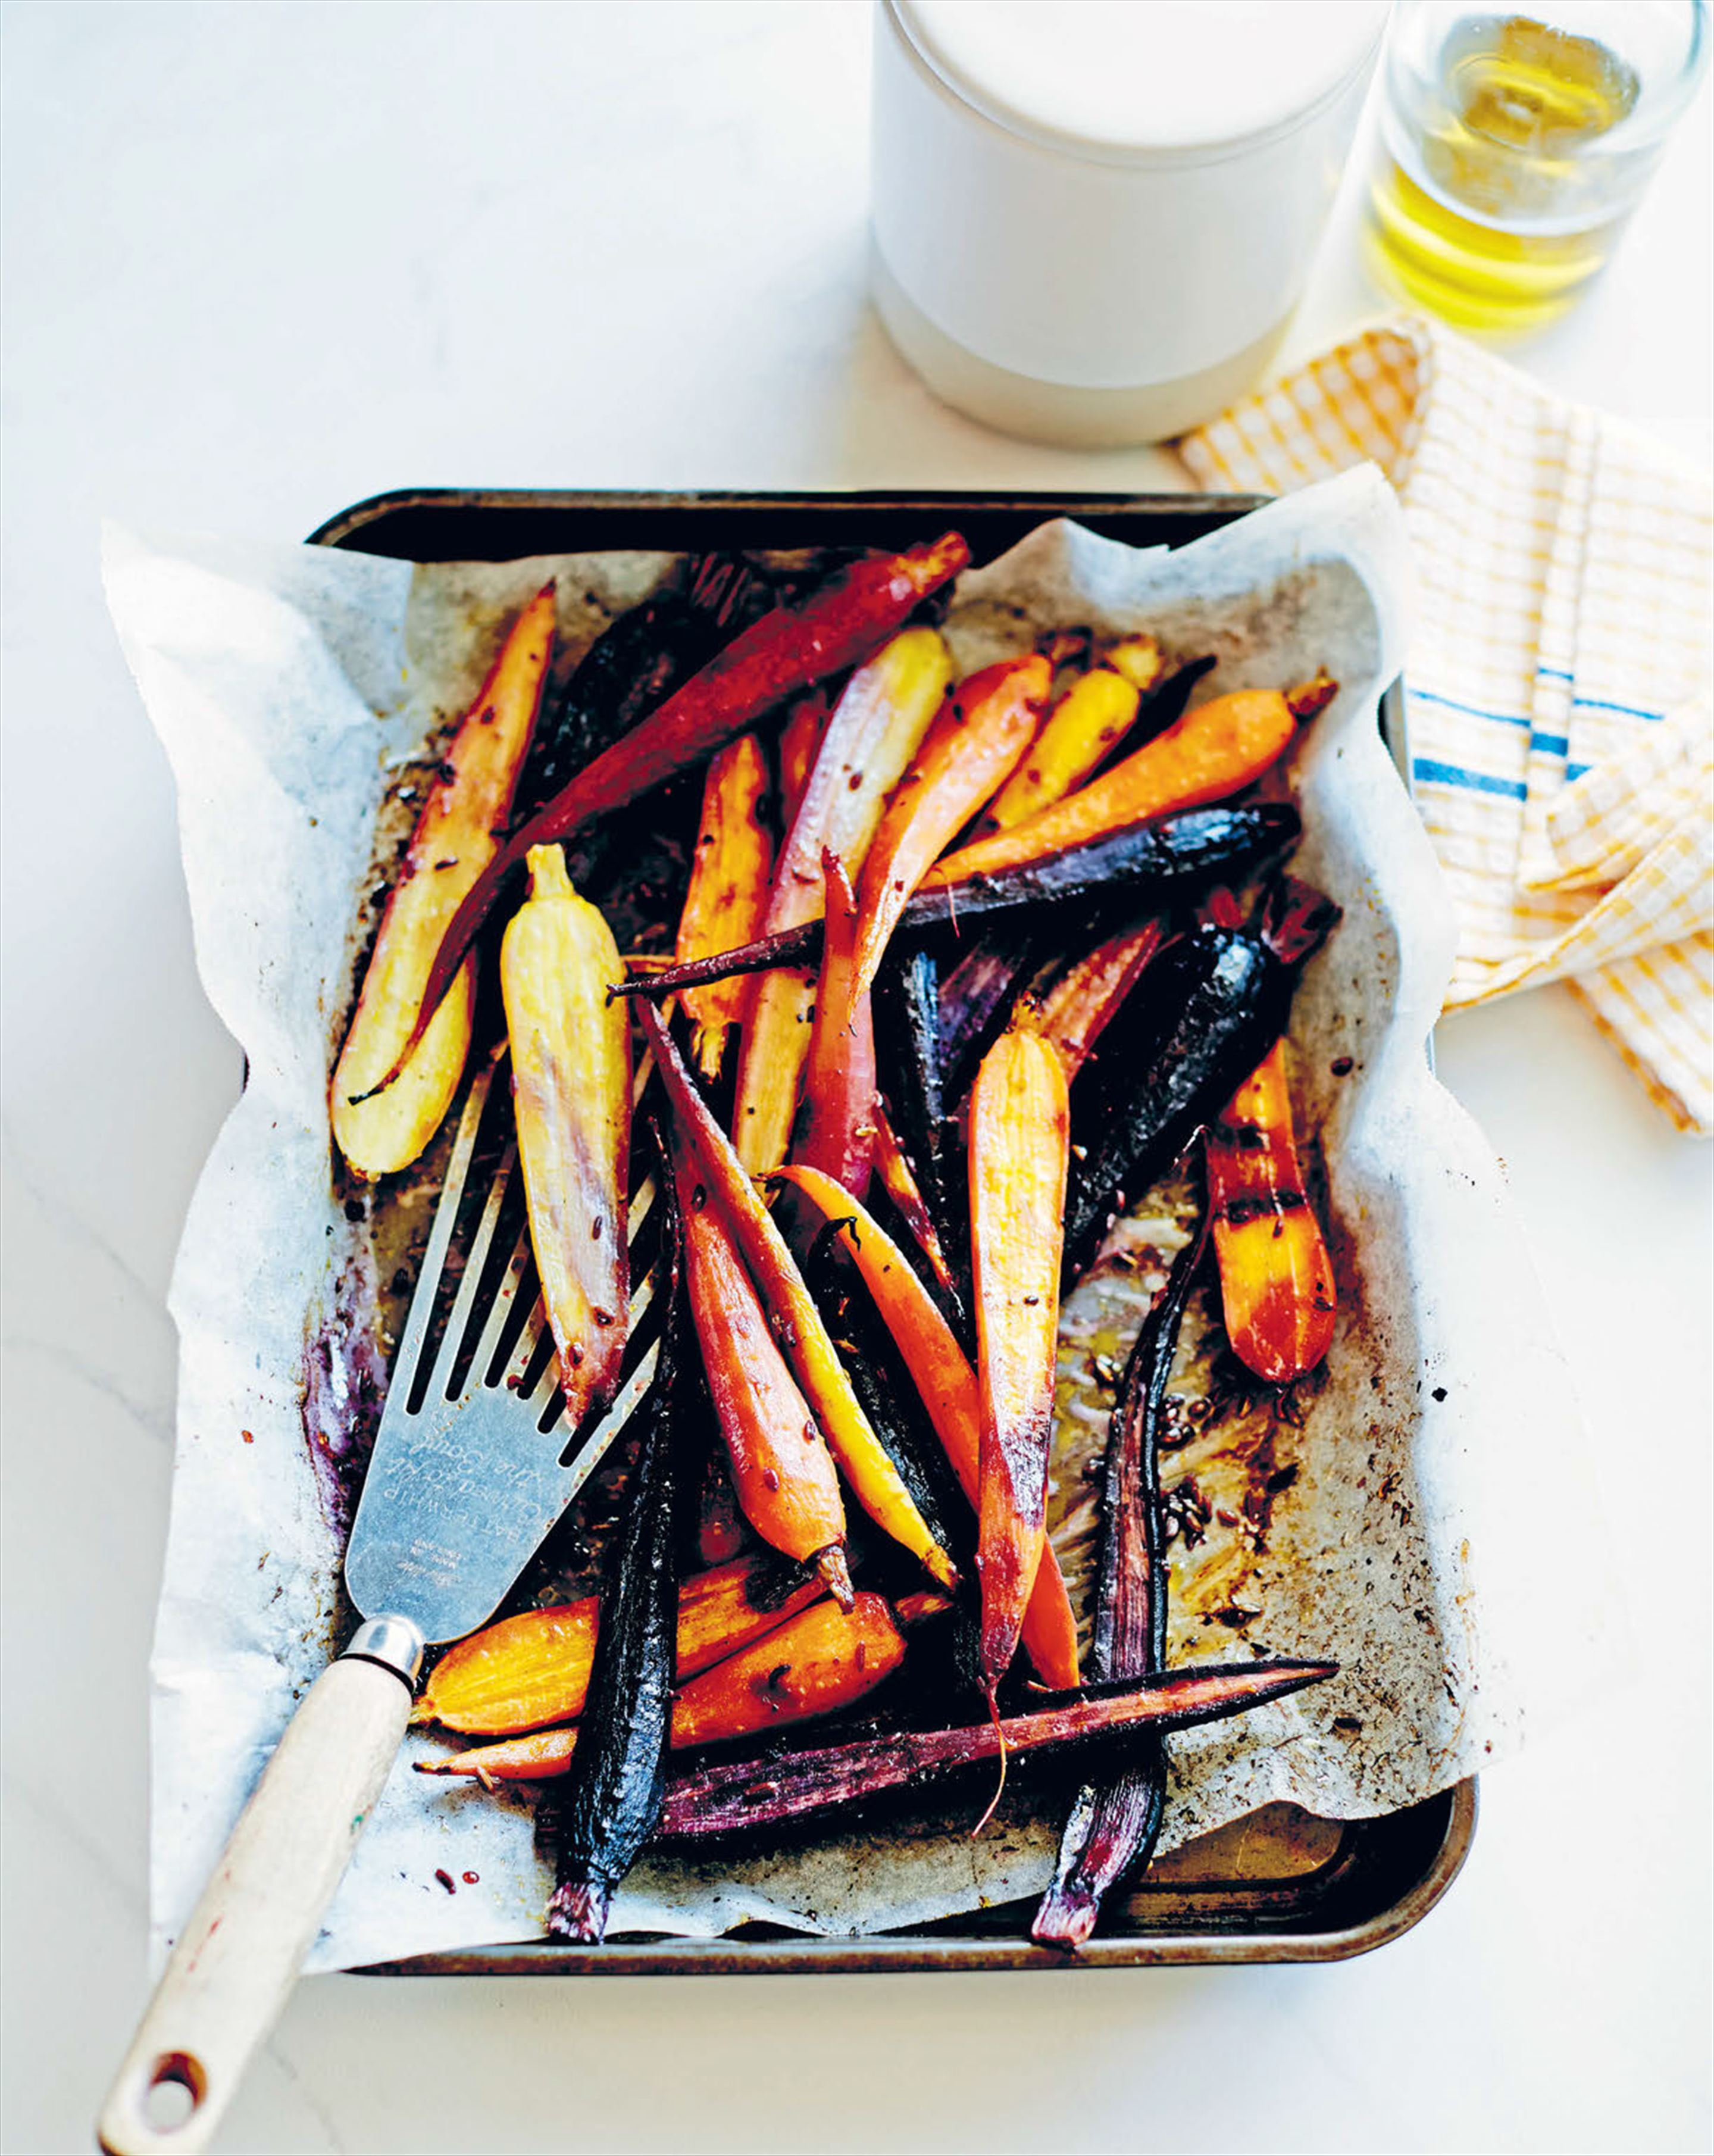 Heirloom carrots with fennel and orange dressing